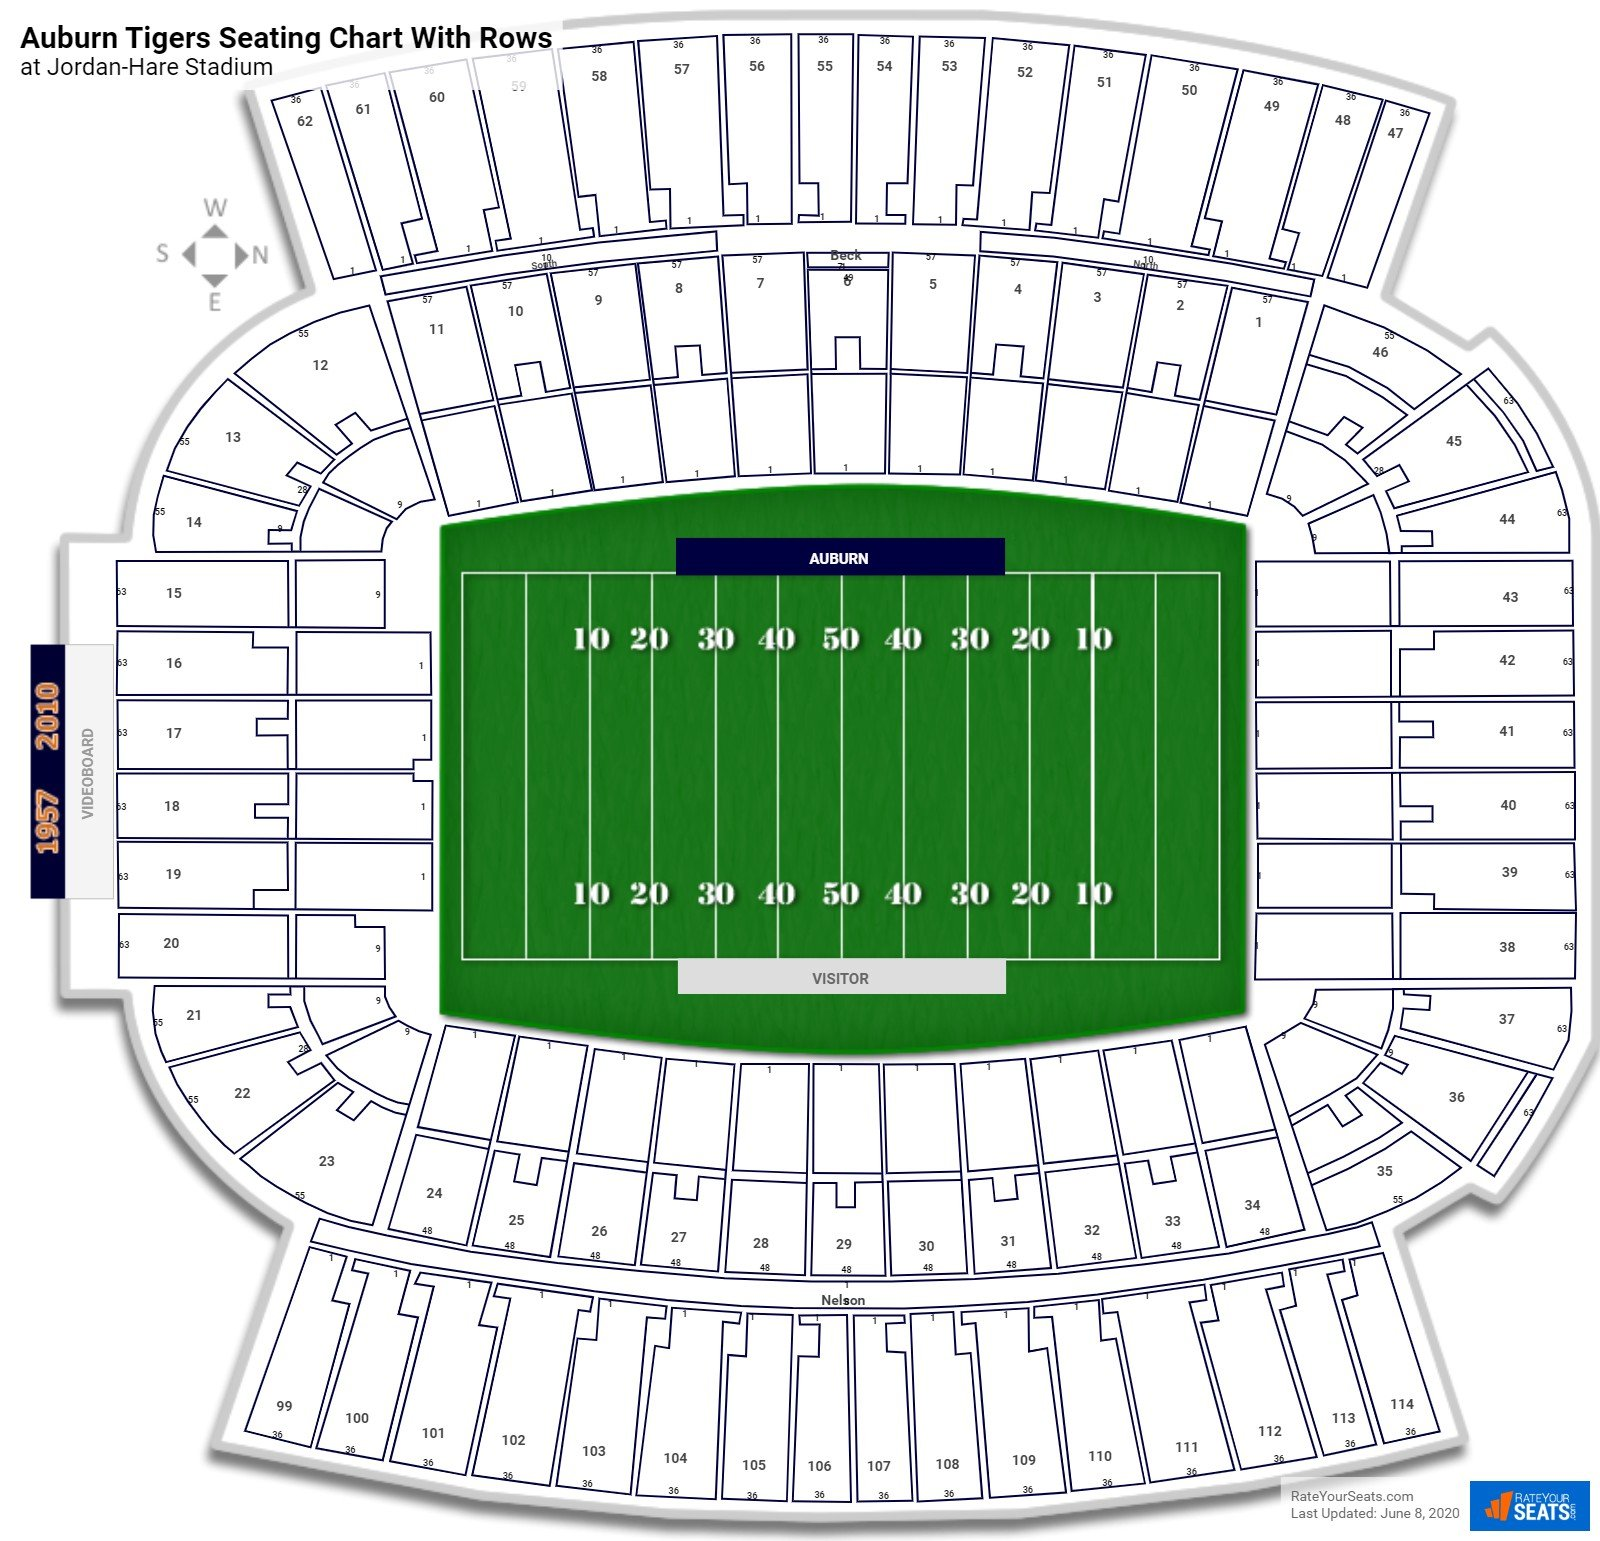 Jordan-Hare Stadium seating chart with rows